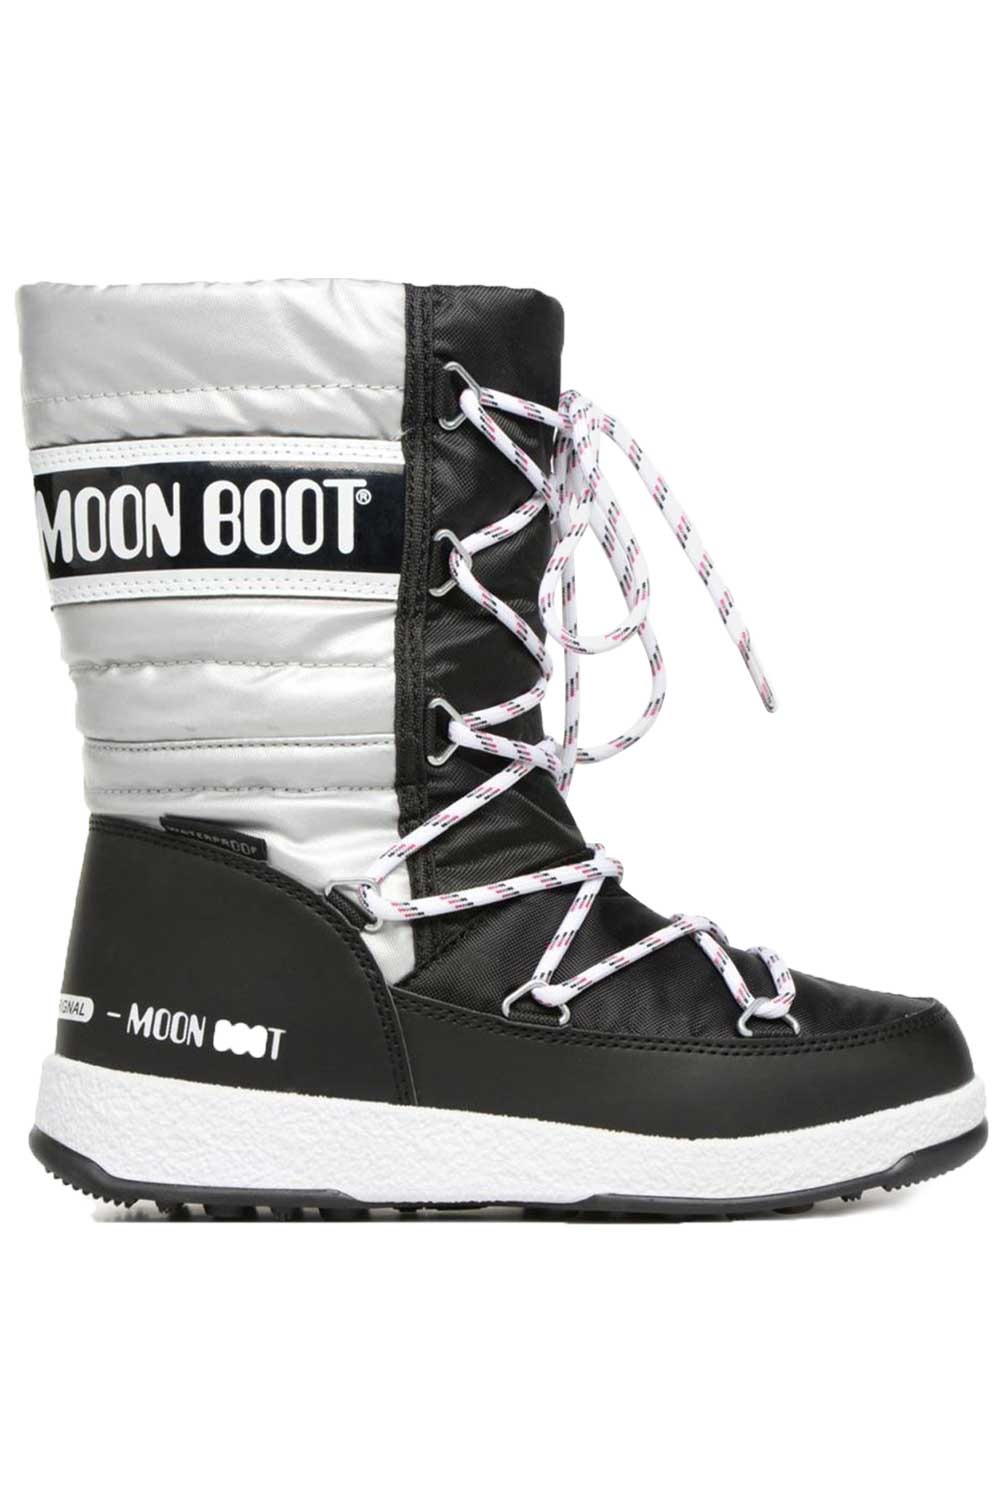 문부츠 키즈 방한부츠 JR 걸 퀼티드 WP_MOONBOOT YOUTH MOON BOOT JR GIRL QUILTED WP_BLACK/SILVER_VMQ864BS_AVMQ864BS